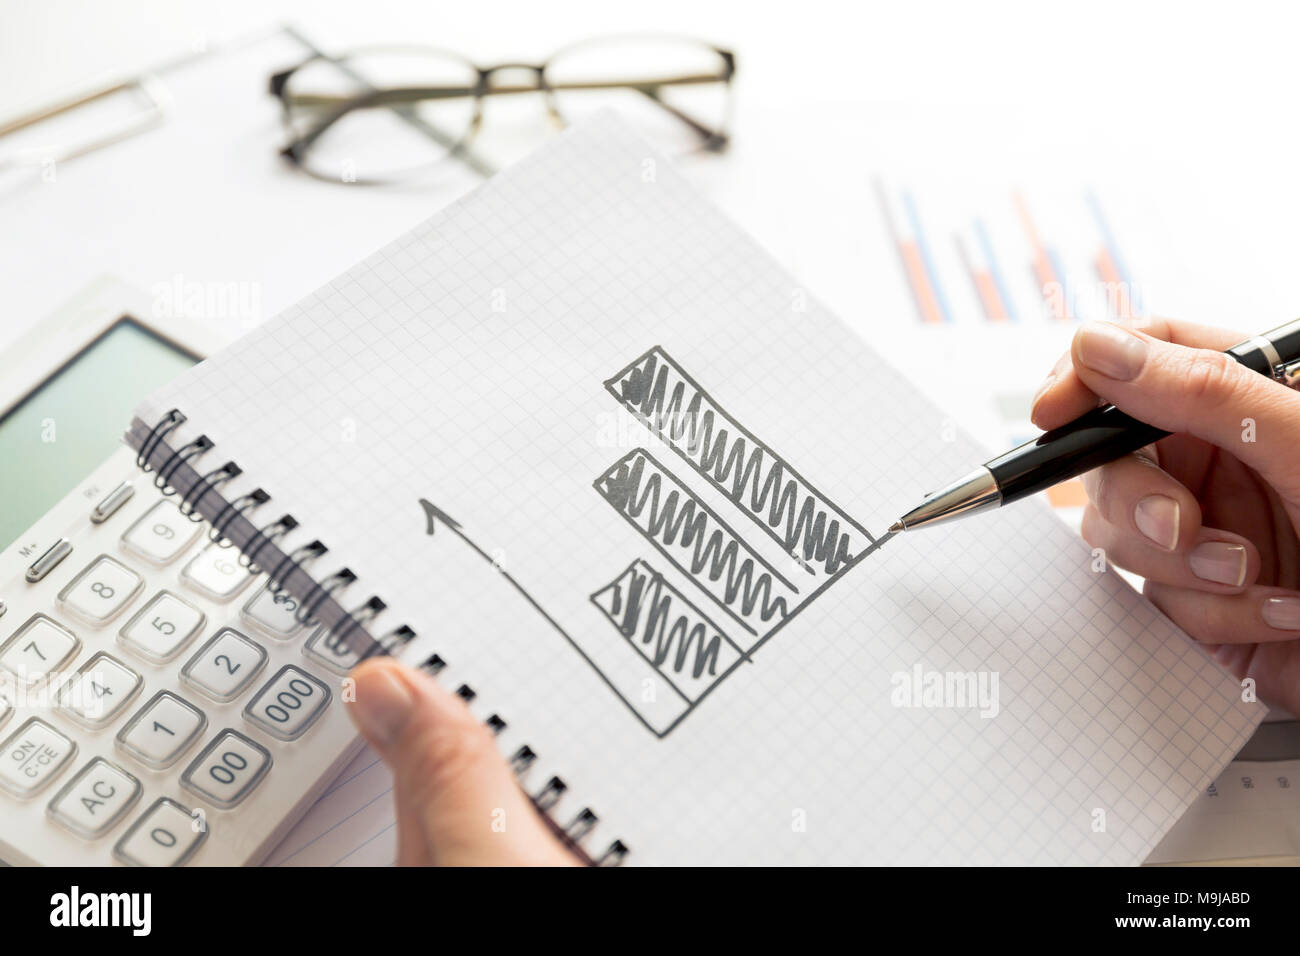 Businesswoman working on project about business growth. Drawing of a growing graph in notebook - Stock Image